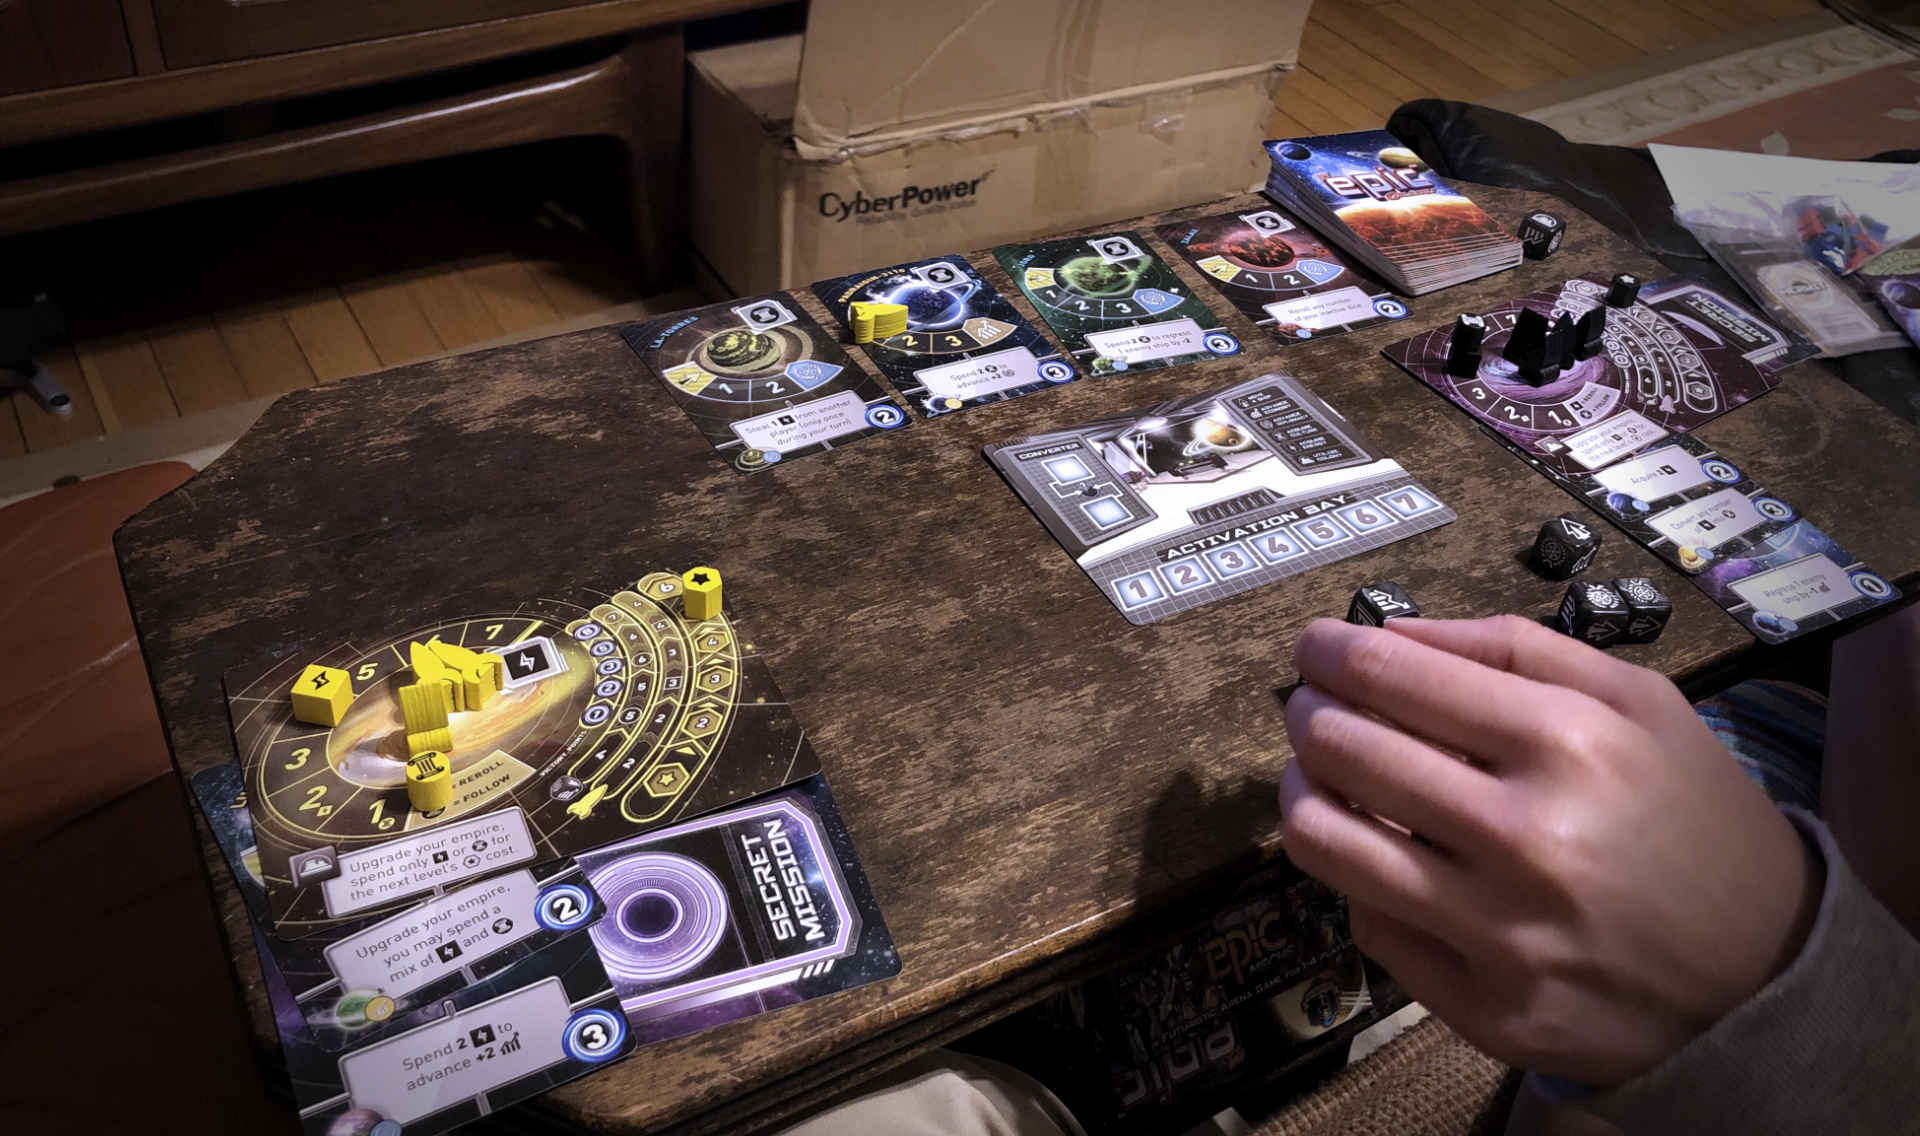 We've still found ways to have fun inside during the winter (like this great Tiny Epic Galaxies card game friends gave us), but we're ready for spring!